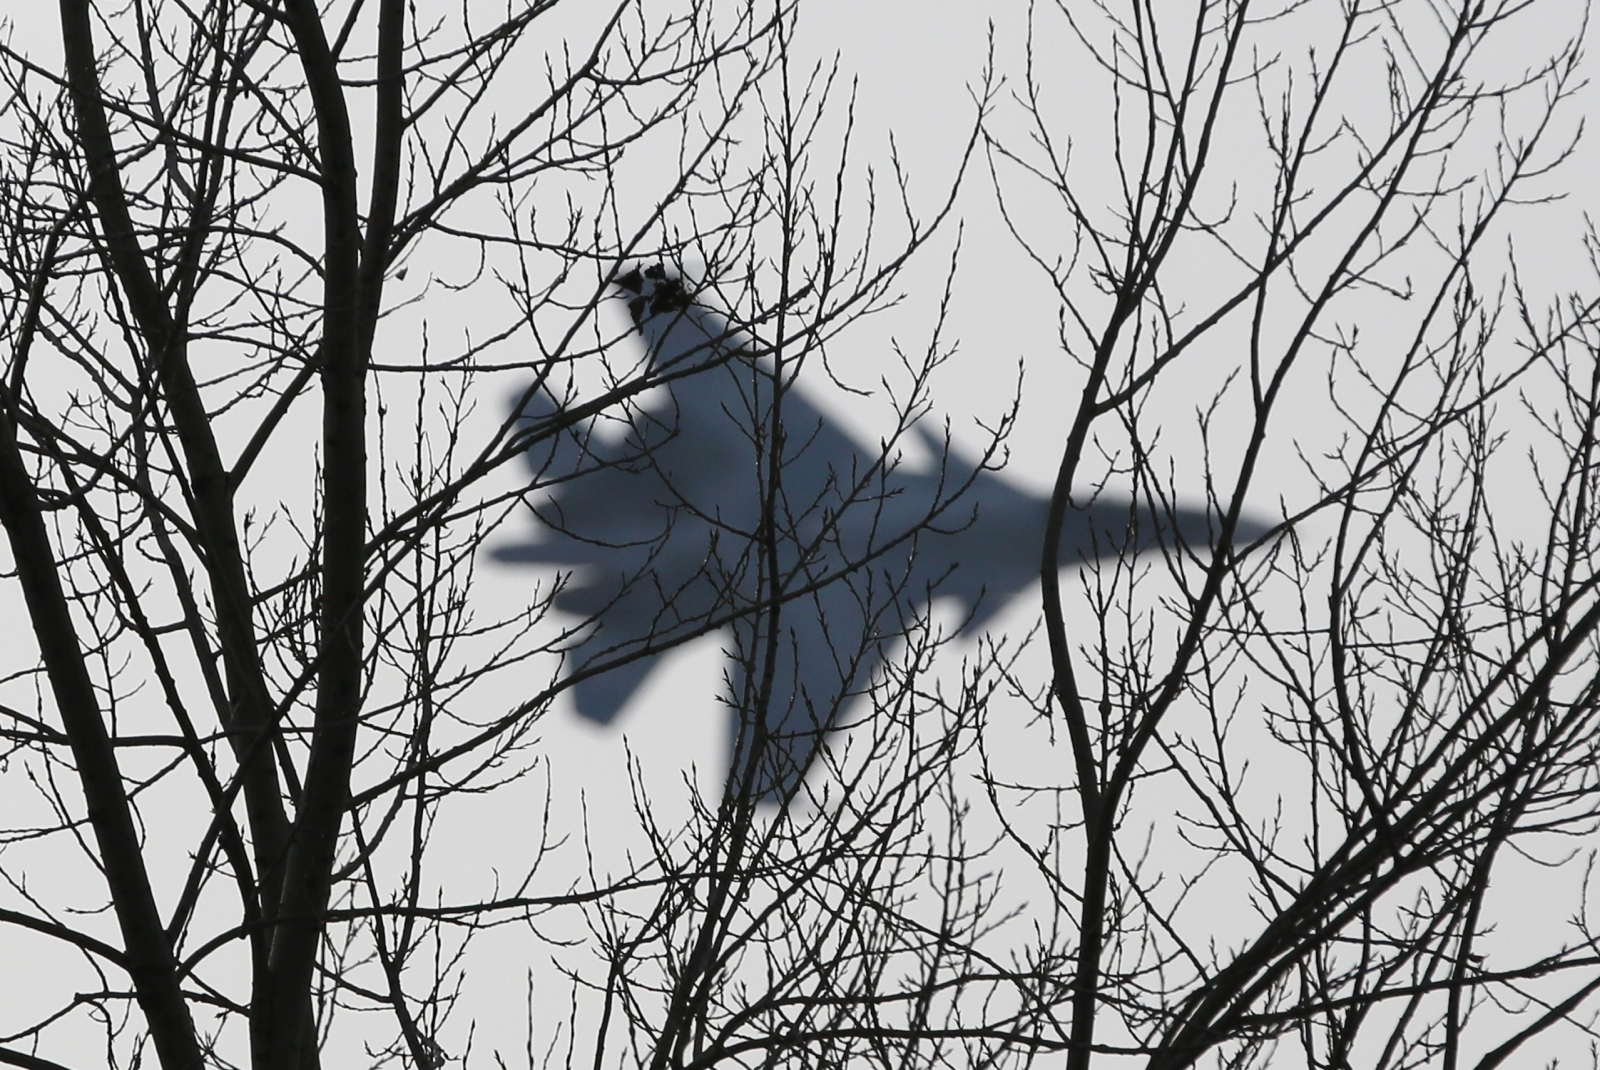 """A jet fighter from the Su-30 SM """"Sokoly Rossii"""" (Falcons of Russia) aerobatic team performs during a show in Krasnoyarsk, Siberia, October 25, 2014. The show is conducted as part of a recruitment drive for Russia's military divisions, targeting the you"""